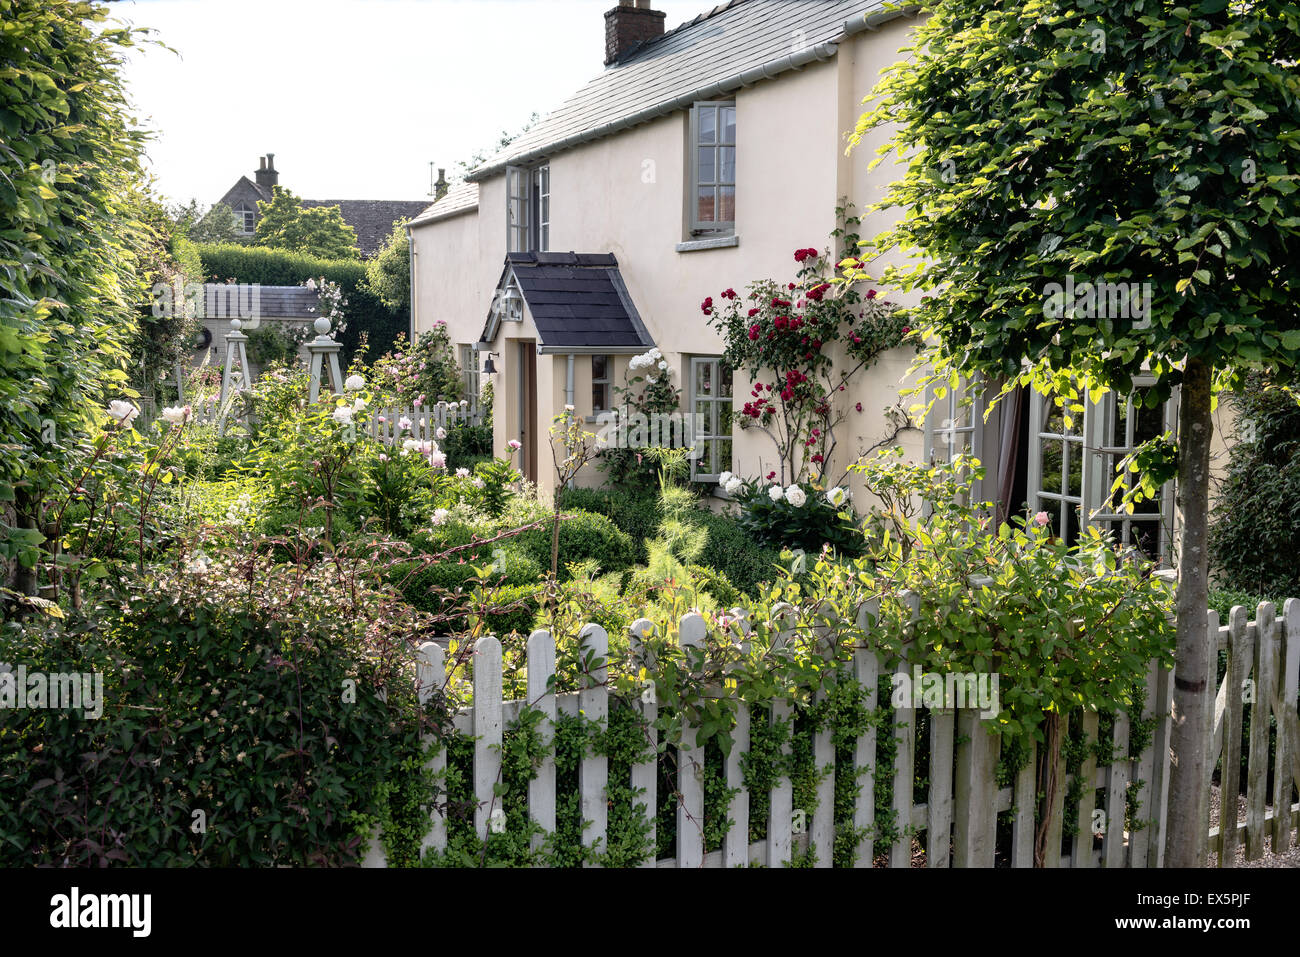 Exterior facade of an English country cottage with picket fence and rose garden - Stock Image